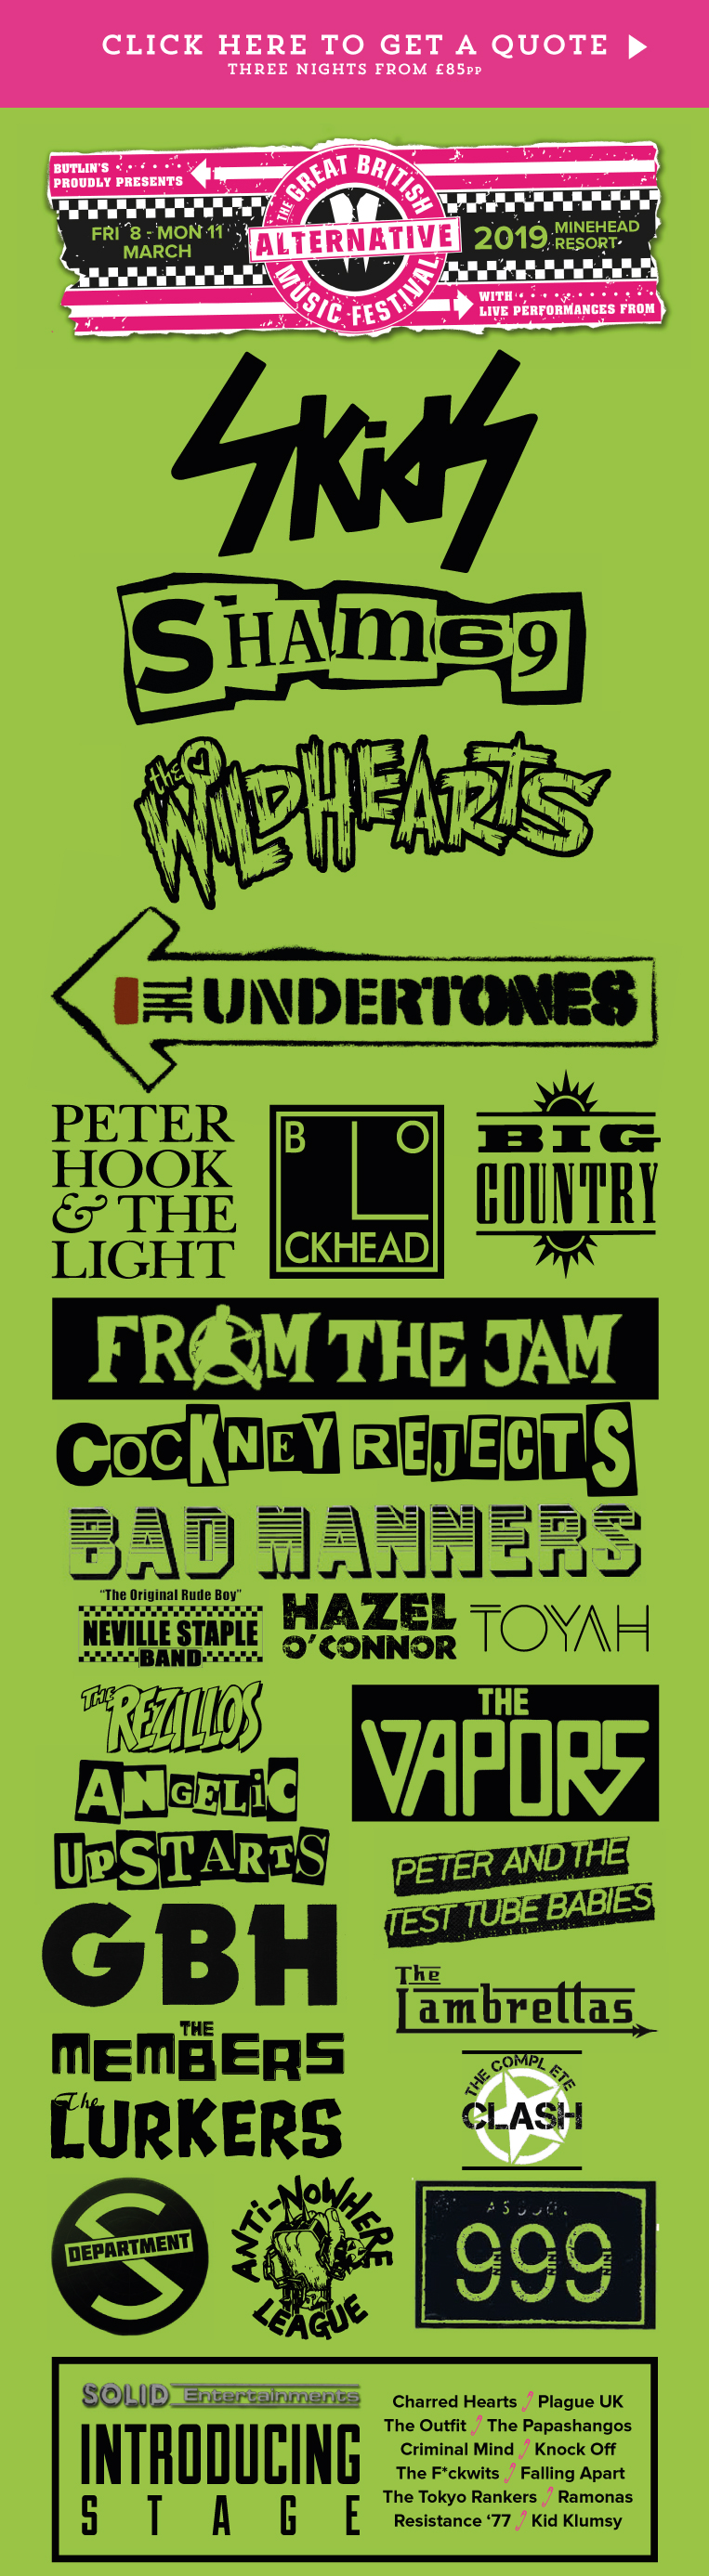 The Great British Alternative Music Festival Line Up